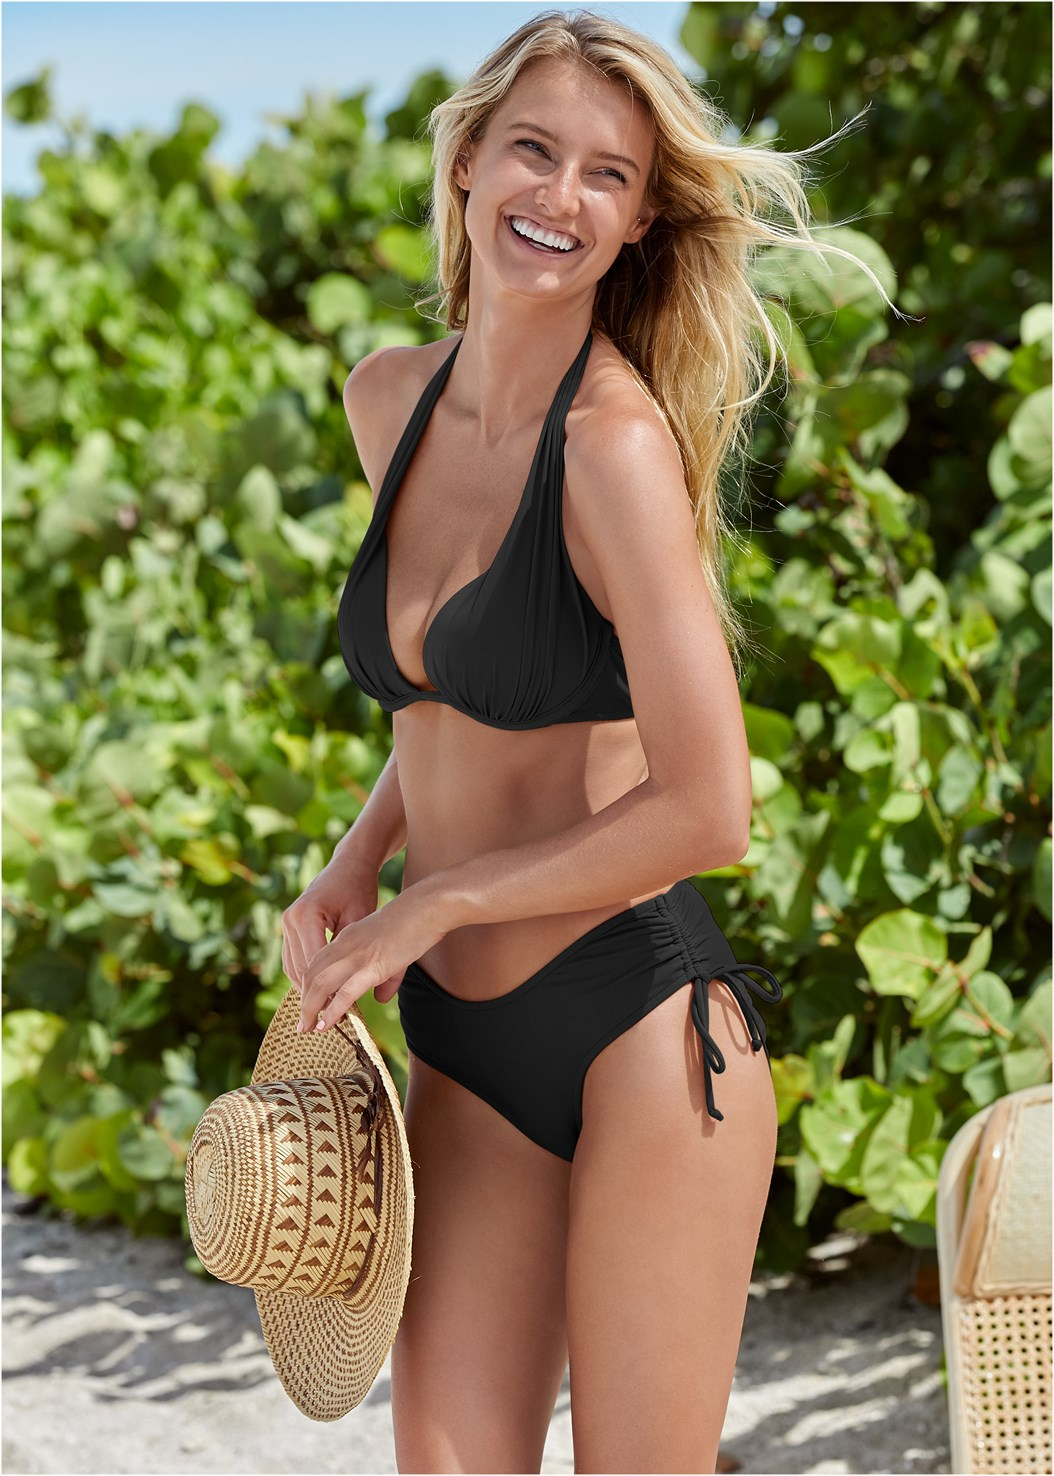 The Magnolia Bottom,Marilyn Underwire Push Up Halter Top,Lovely Lift Wrap Bikini Top,Underwire Wrap Top